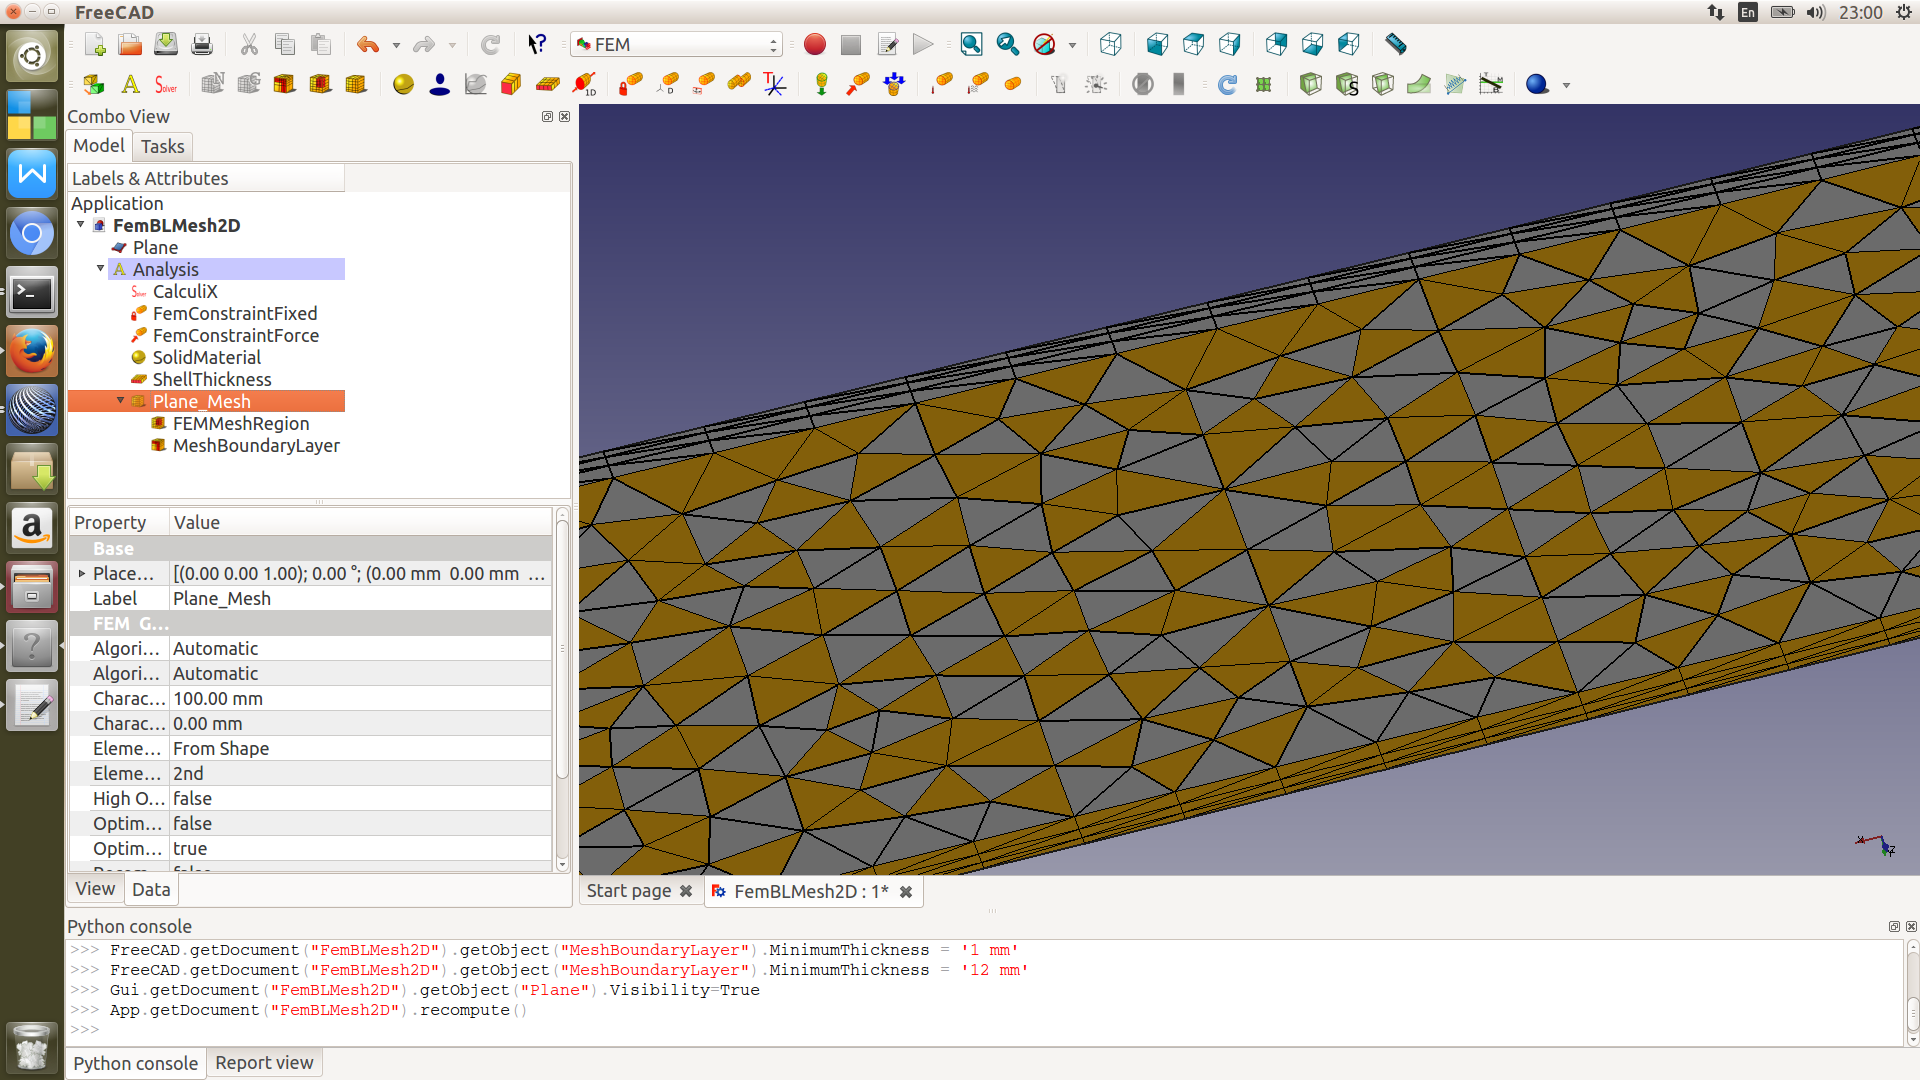 FreeCAD_gmsh_2d_boundaryLayer_meshing.png